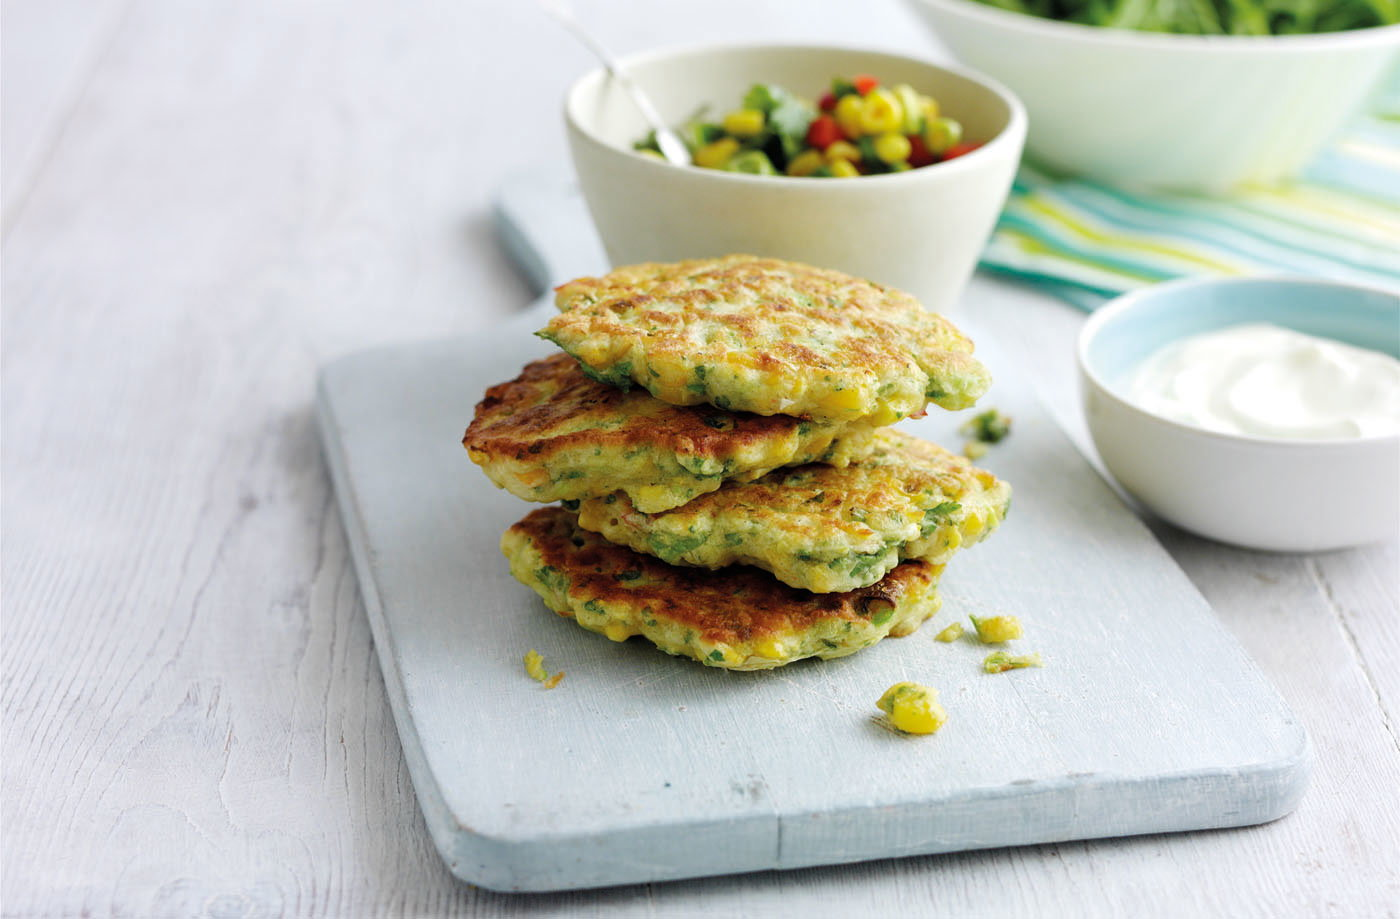 Sweetcorn fritters with avocado salsa recipe